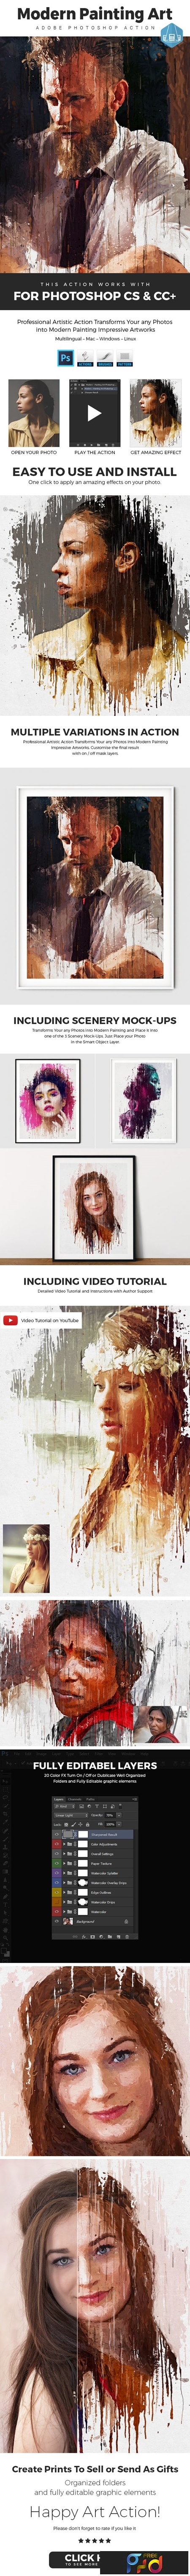 Modern - Painting Art Photoshop Action 23557918 1